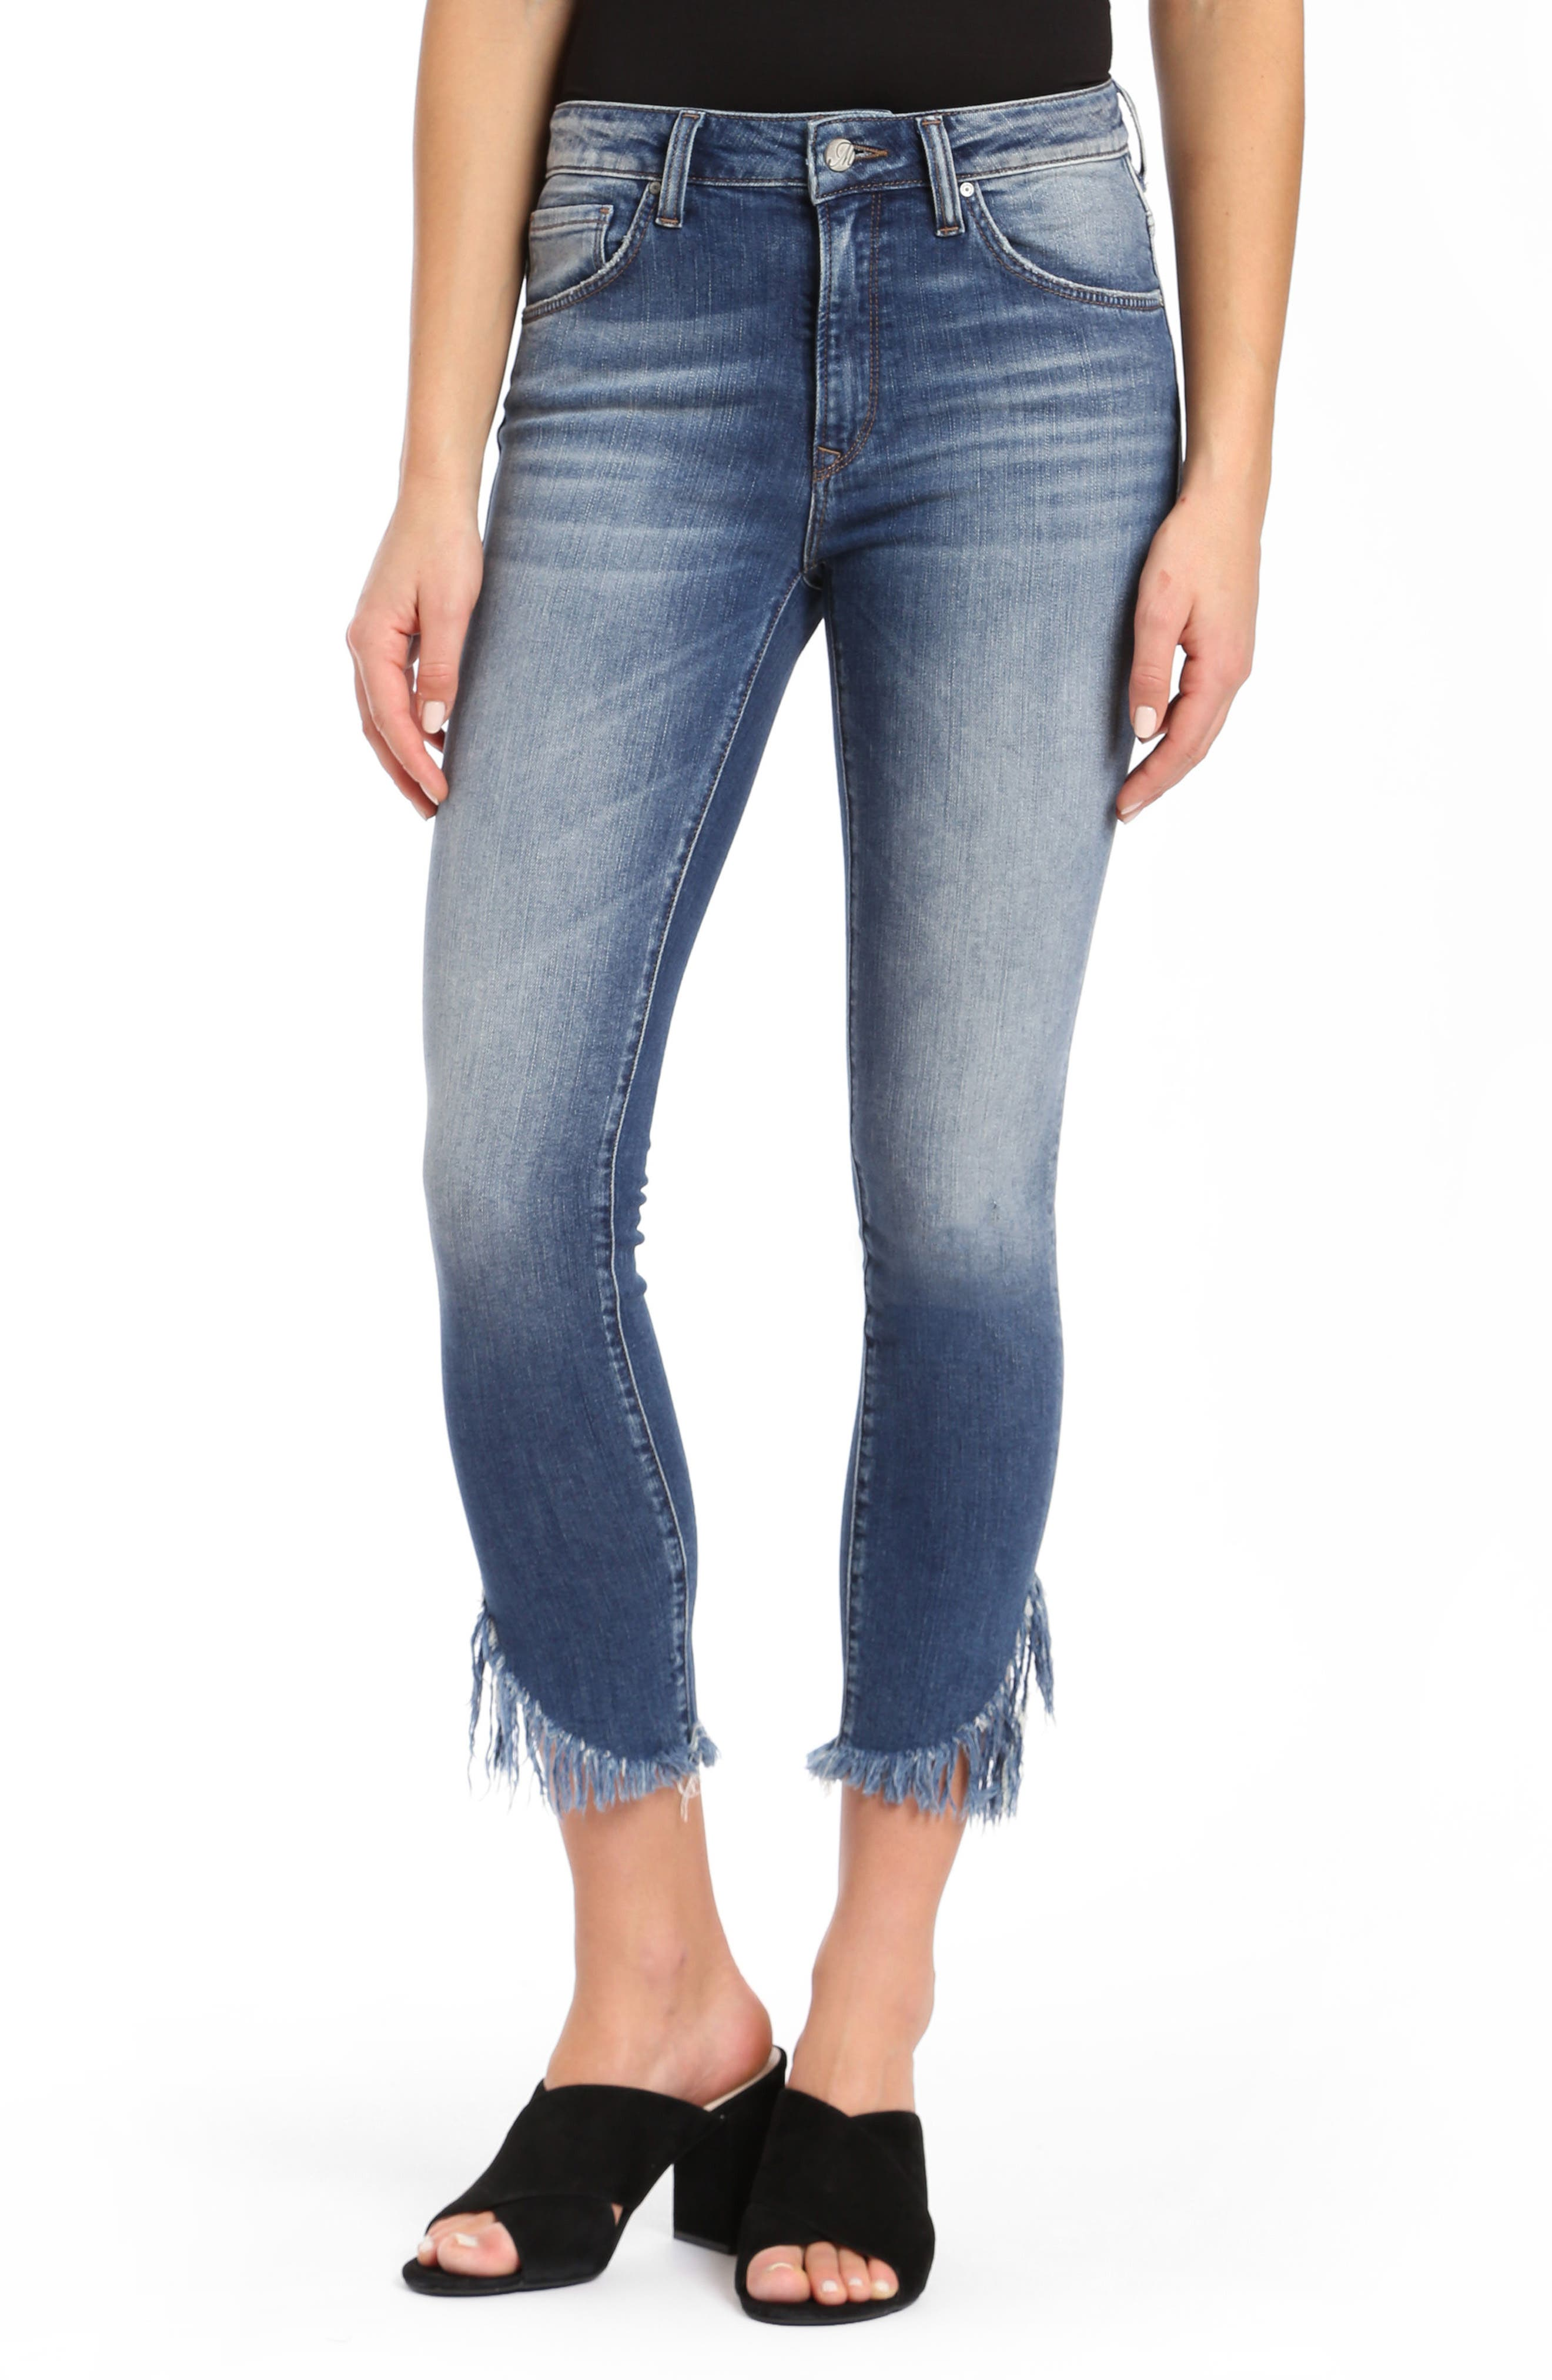 Tess Extreme Ripped Super Skinny Jeans,                             Main thumbnail 1, color,                             EXTREME RIPPED VINTAGE